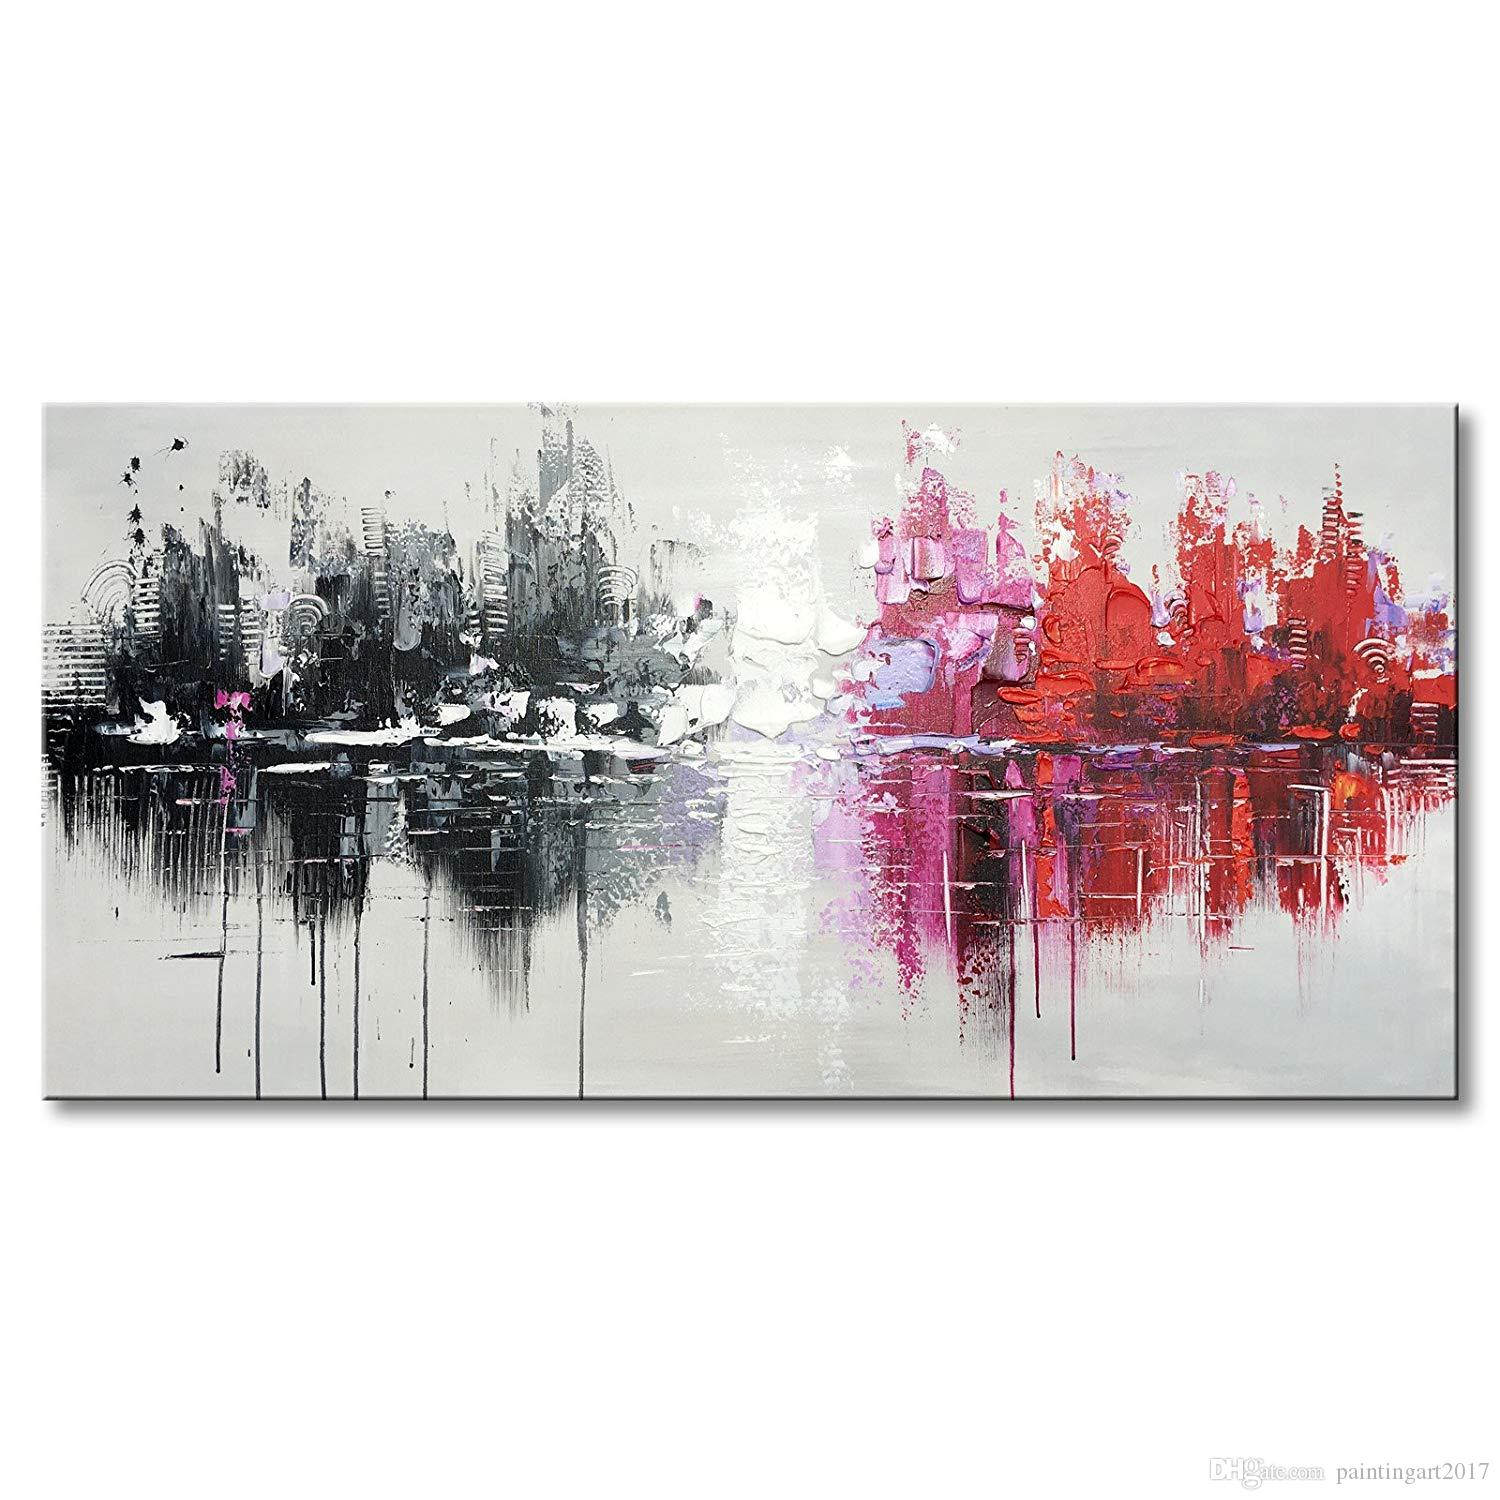 New Arrival Hand Painted Textured Abstract Canvas Wall Art Cityscape Painting Reflection Artwork (48 x 24 inch)